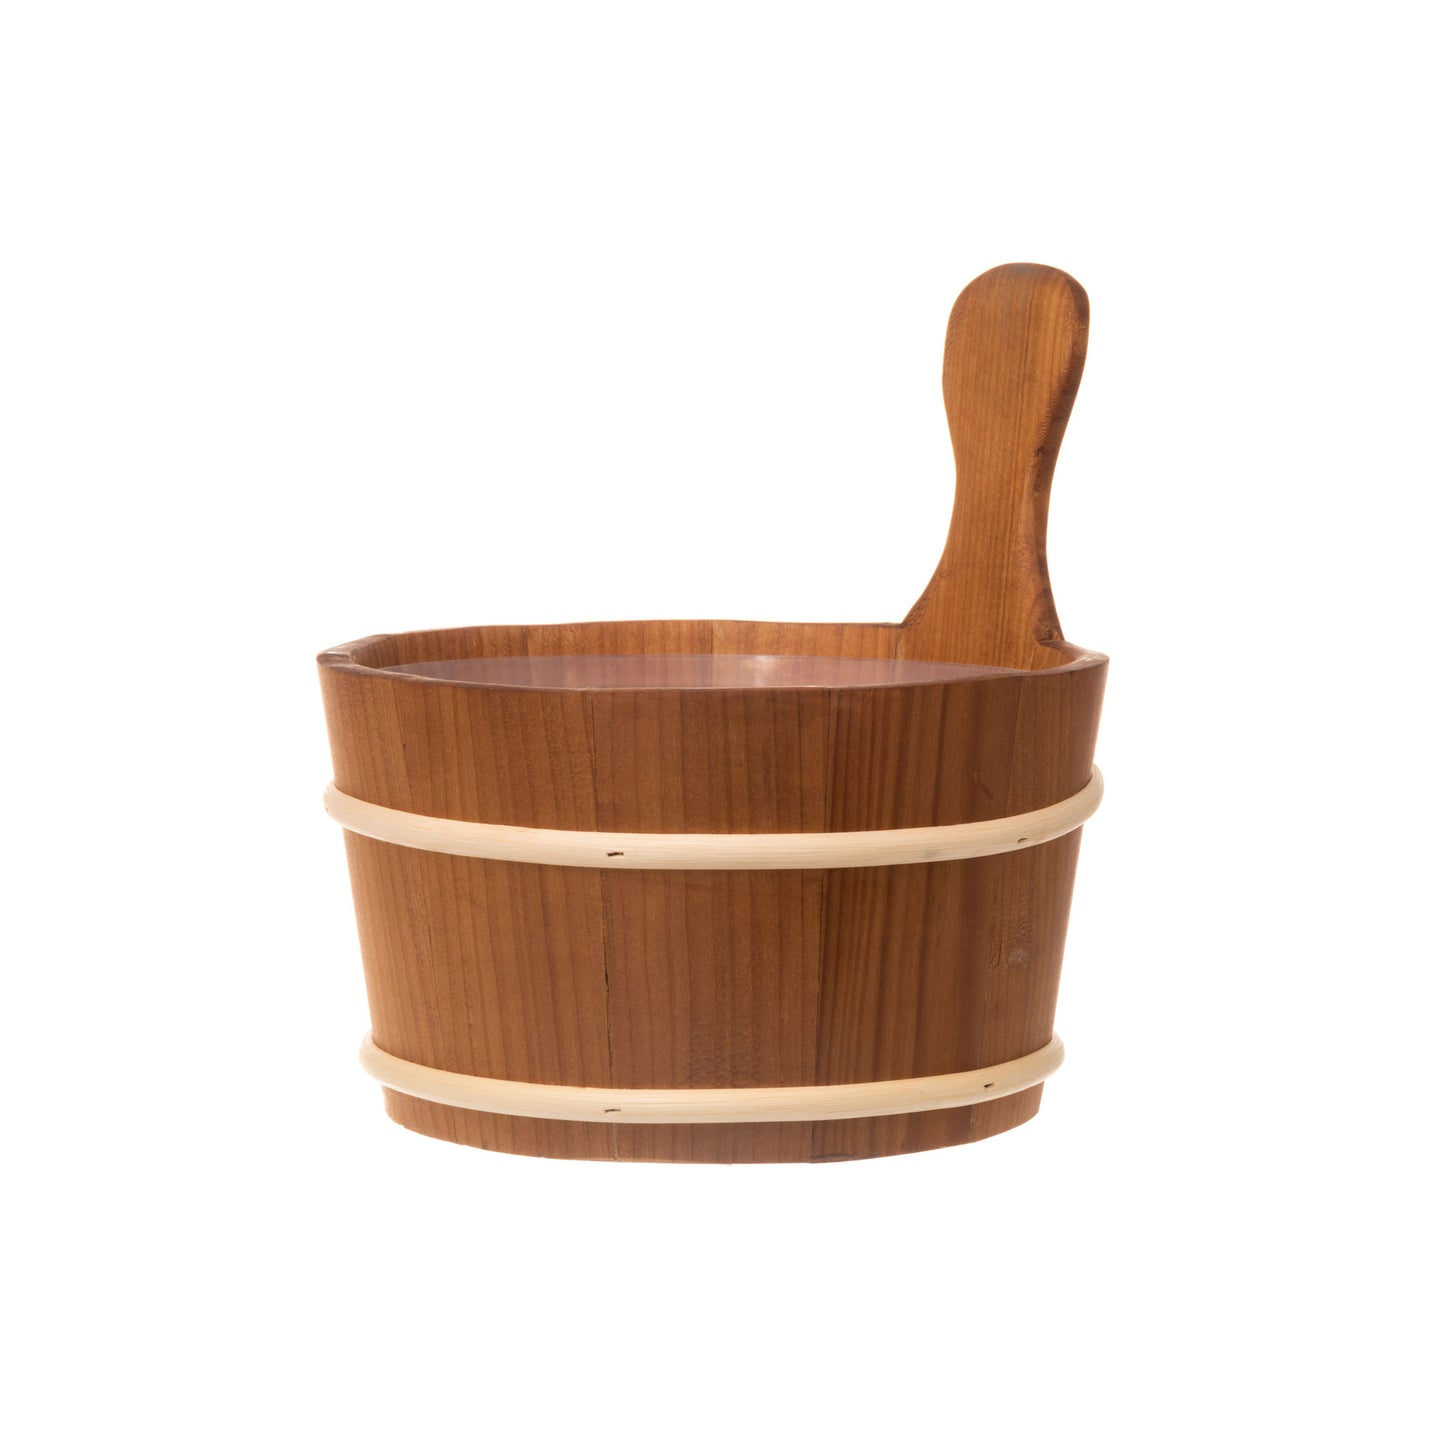 4 Living Sauna Bucket Heat Treated Alder 4 Litre Default Title Sauna Bucket/Pail Finnmark Sauna